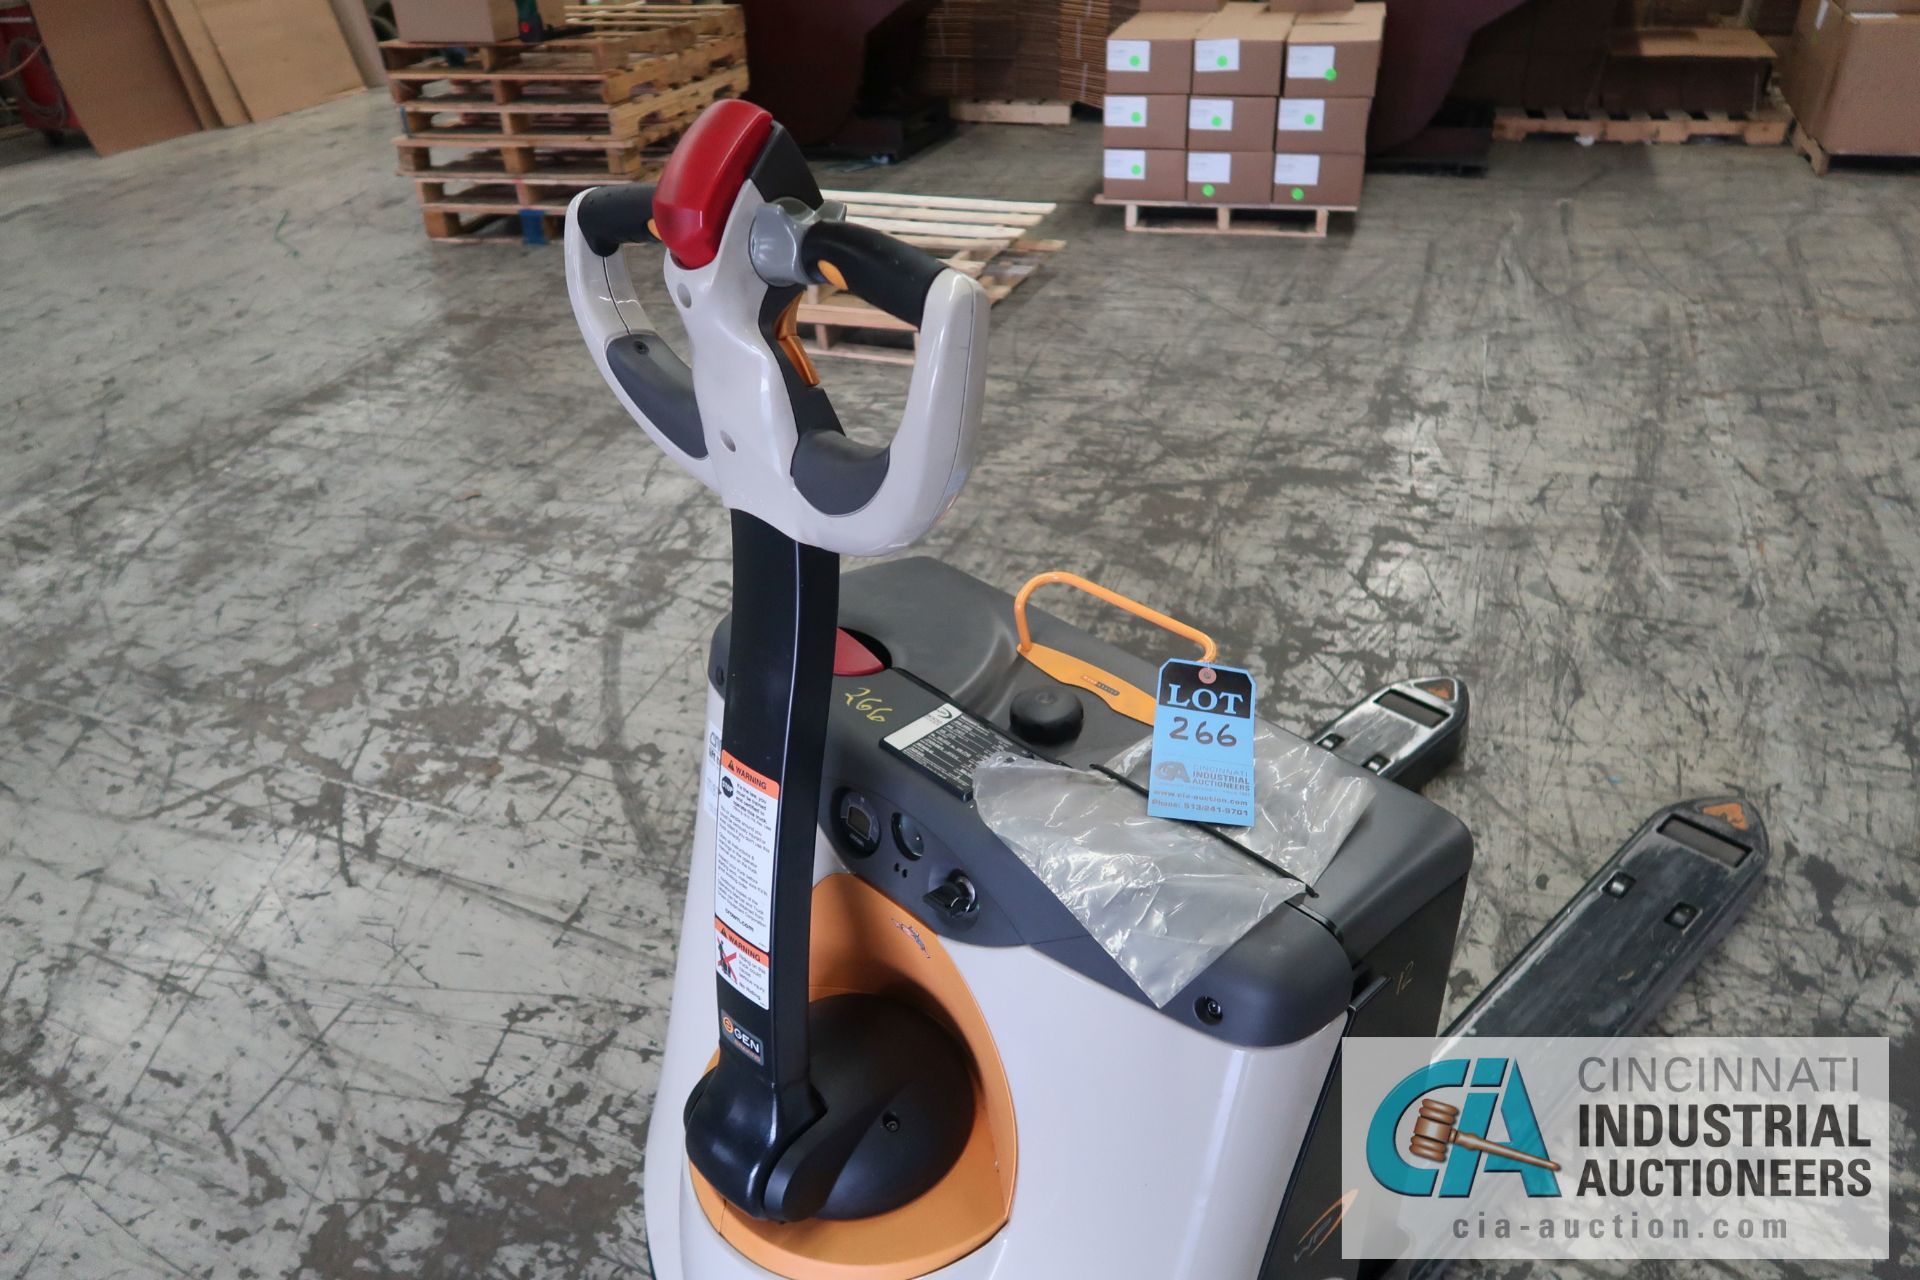 2,000 LB. CROWN MODEL WP3035-45 ELECTRIC WALK BEHIND PALLET TRUCK; S/N 7A291635, WITH BUILT IN - Image 4 of 6